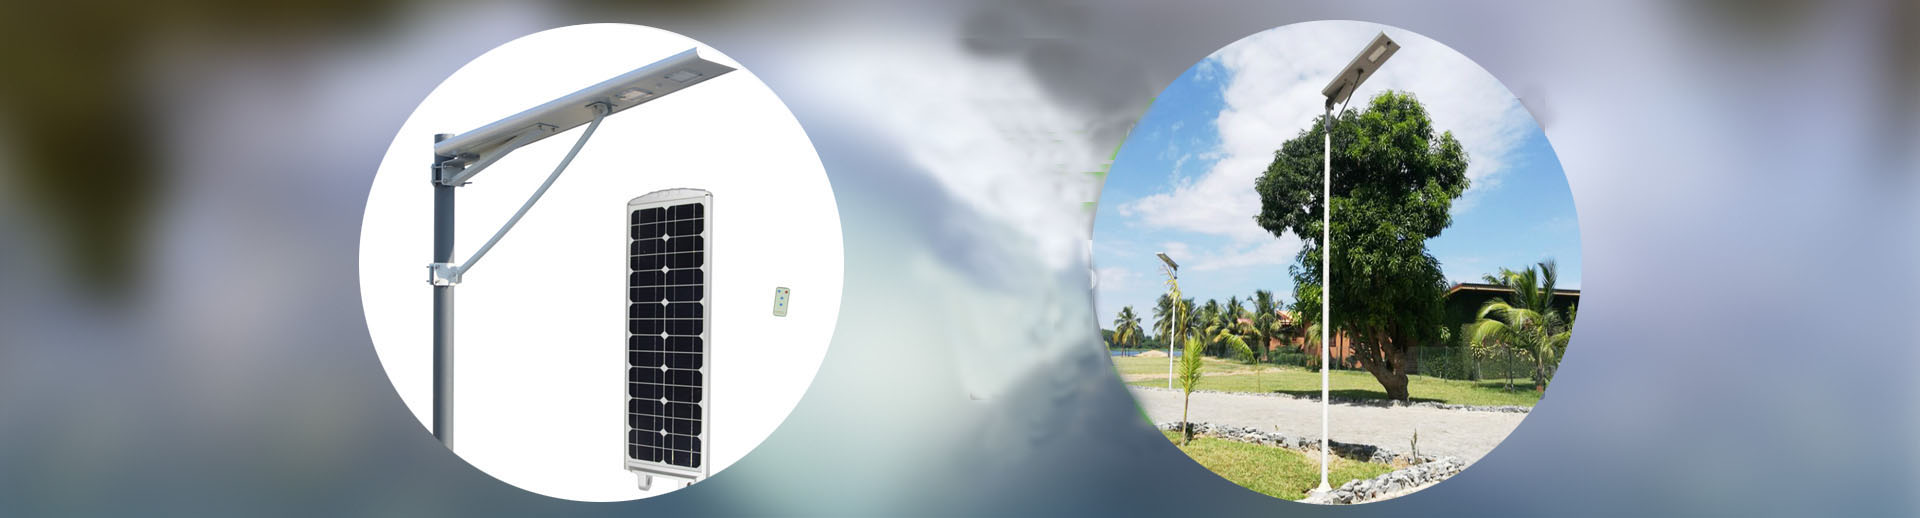 all-in-one-solar-street-light-manufacturers